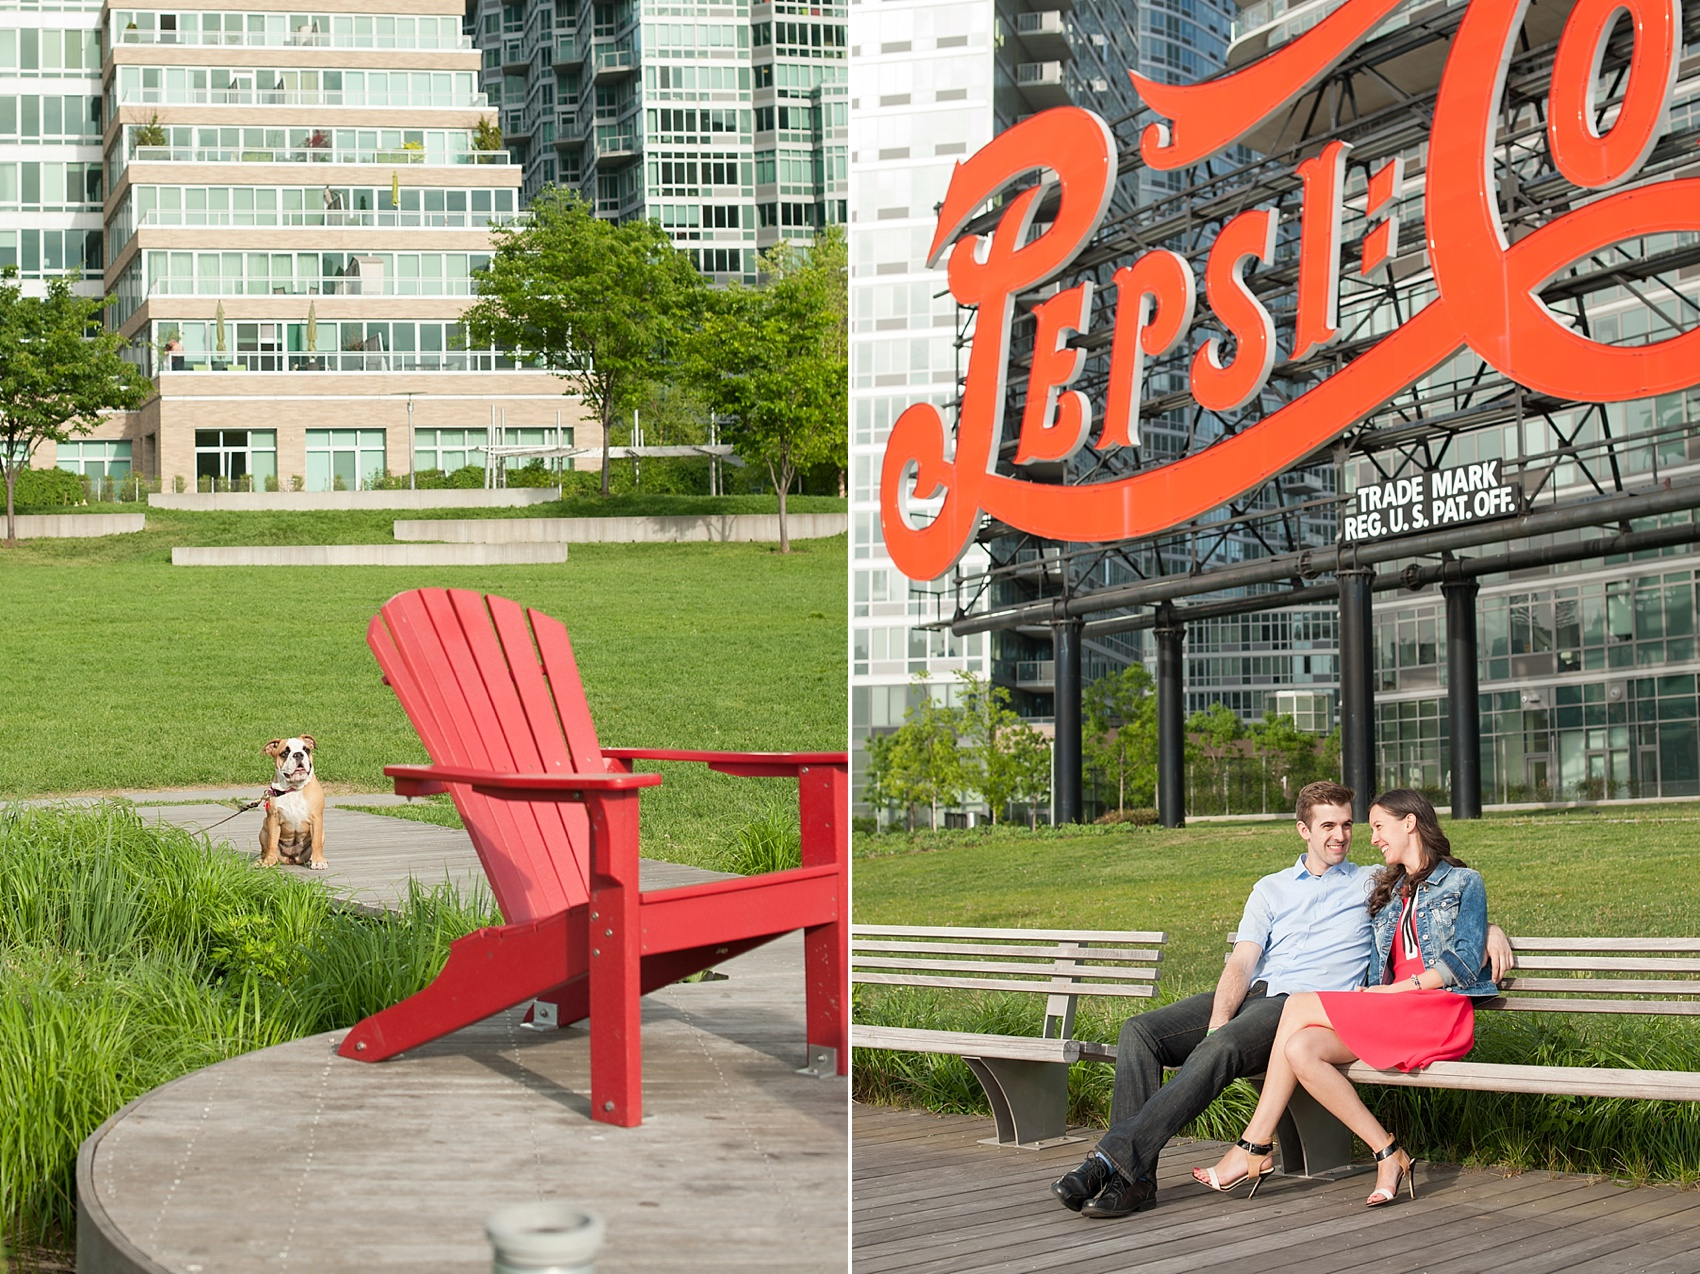 Long Island City waterfront engagement session at Gantry State Park by Mikkel Paige Photography, NYC wedding photographer. The park is famous for vintage its Pepsi Cola sign.